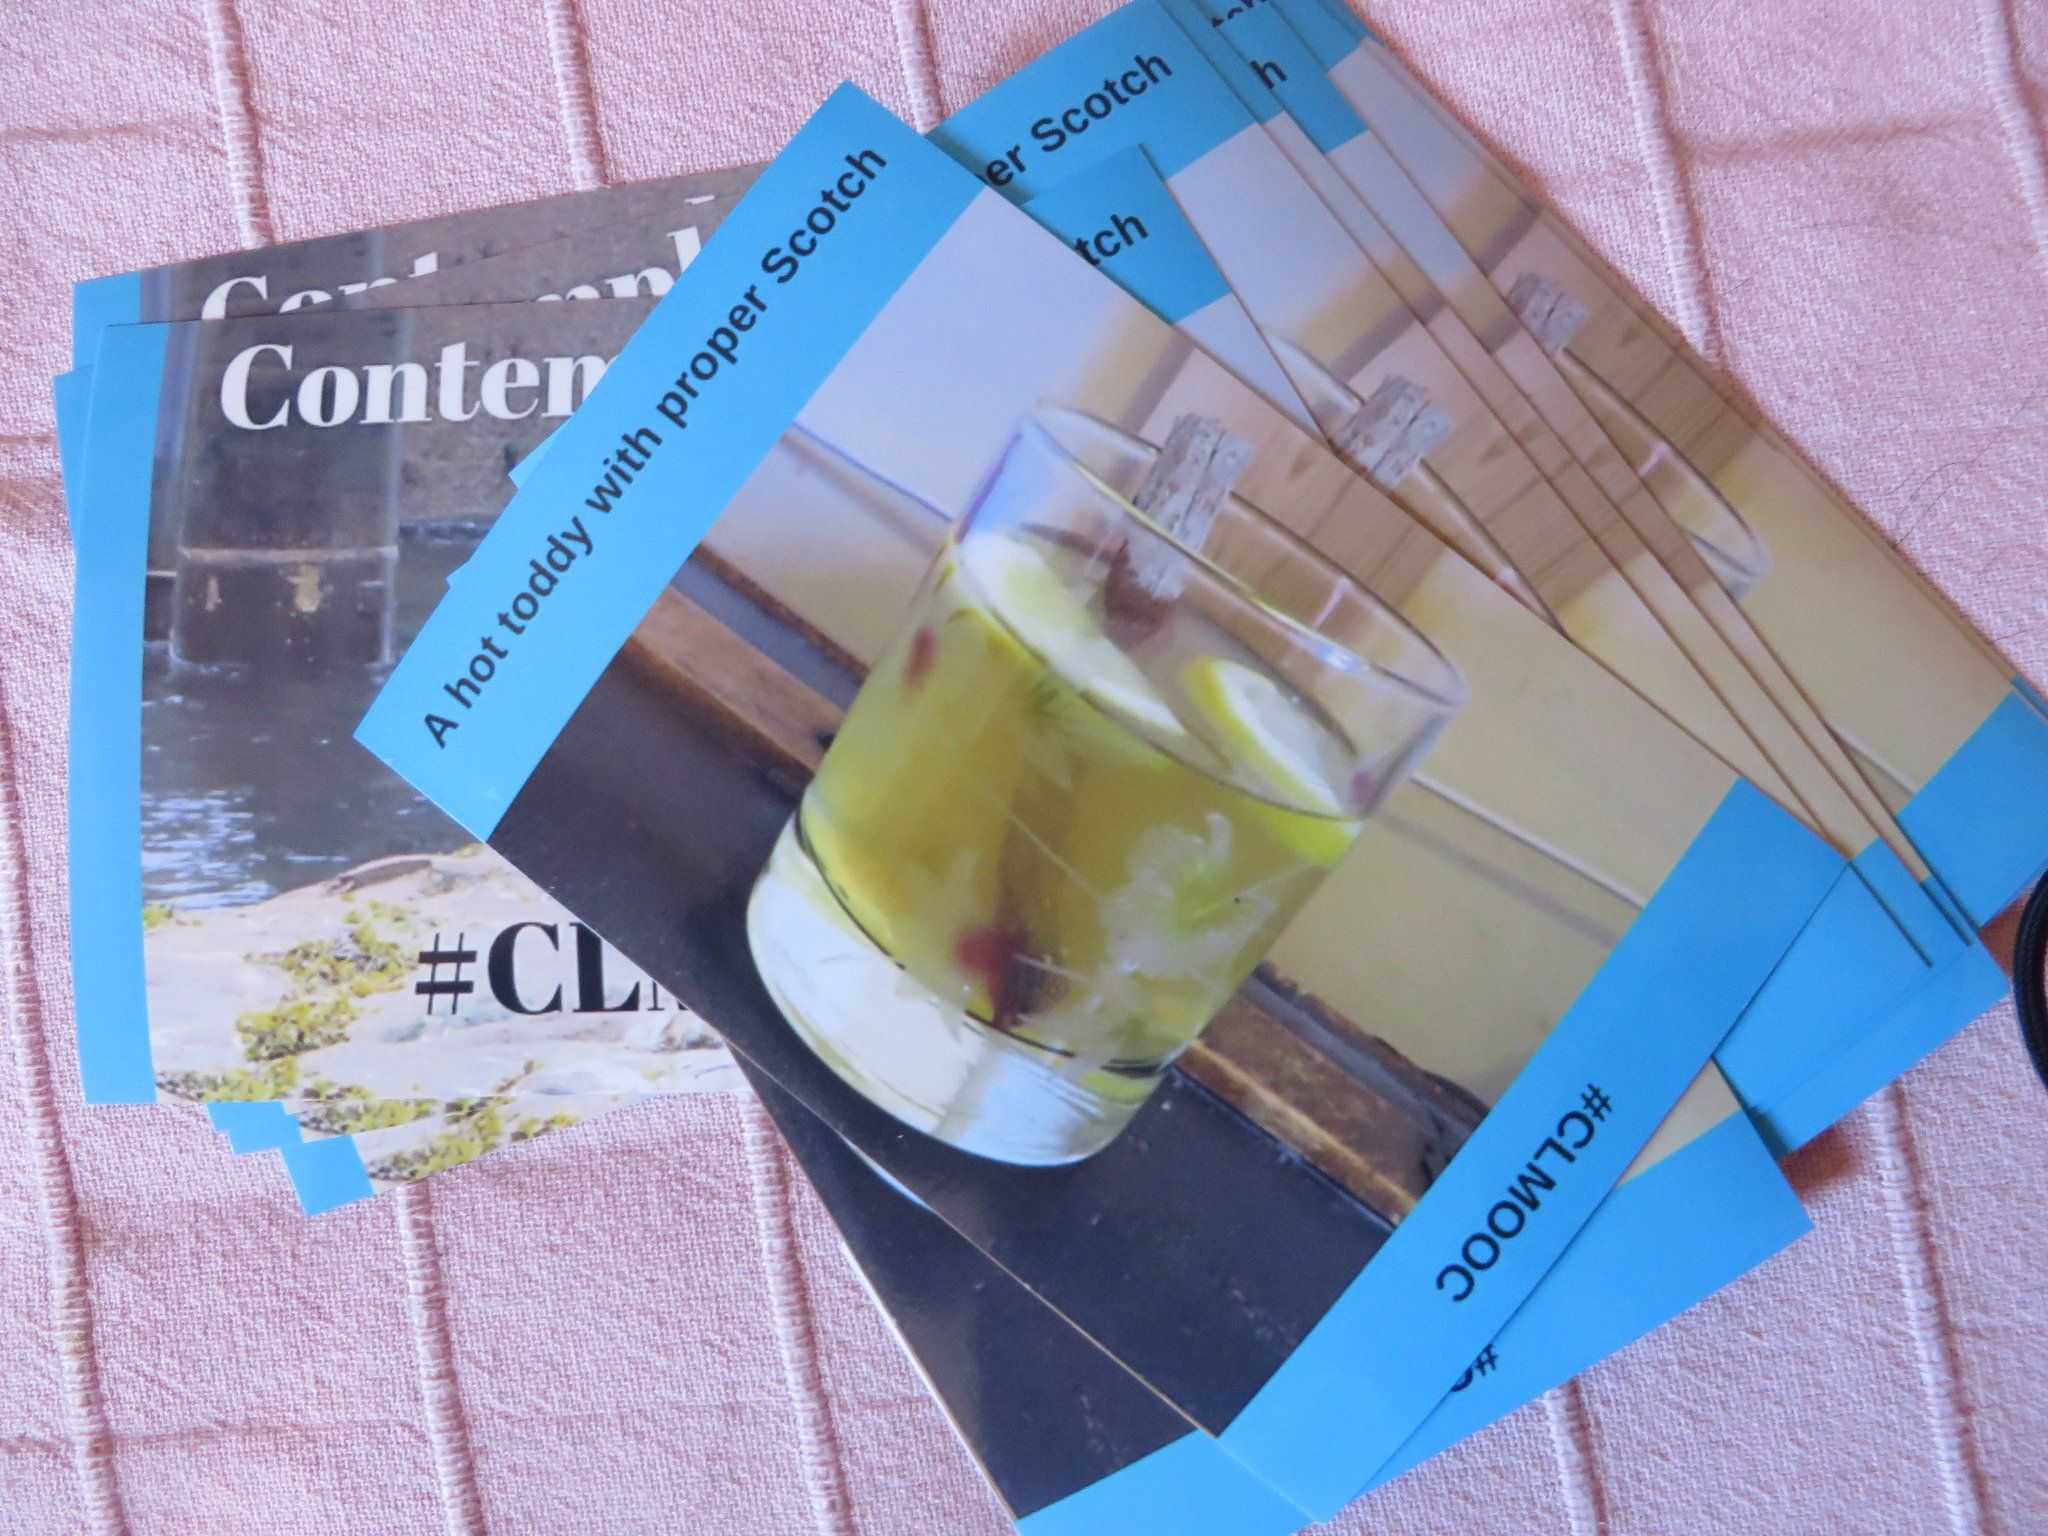 Another batch of #clmooc cards ready to post. Some food (well, drink) and some hellos https://t.co/mIH4WuUafb